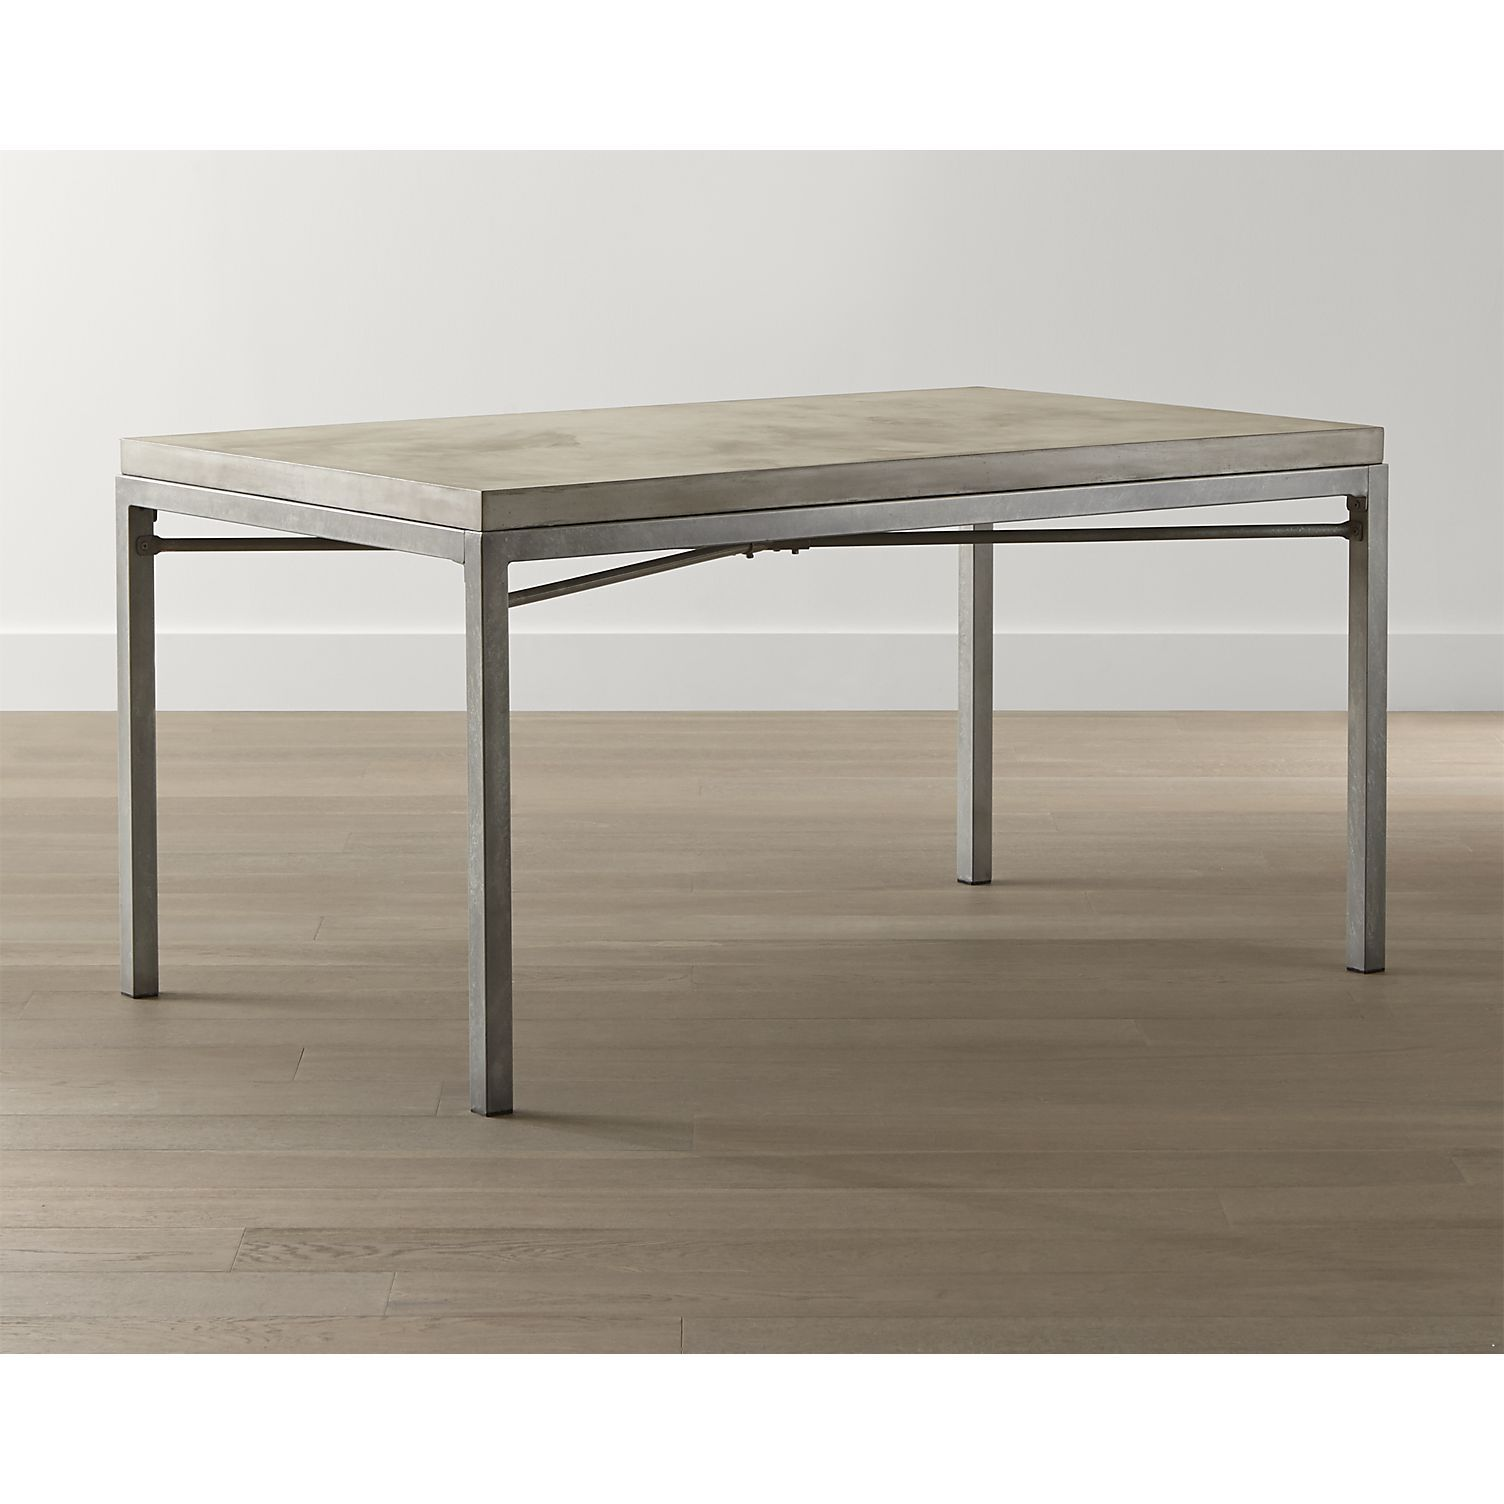 Metra extension dining table crate and barrel - Concrete Top Zinc X Base 48x28 High Dining Table In Dining Tables Crate